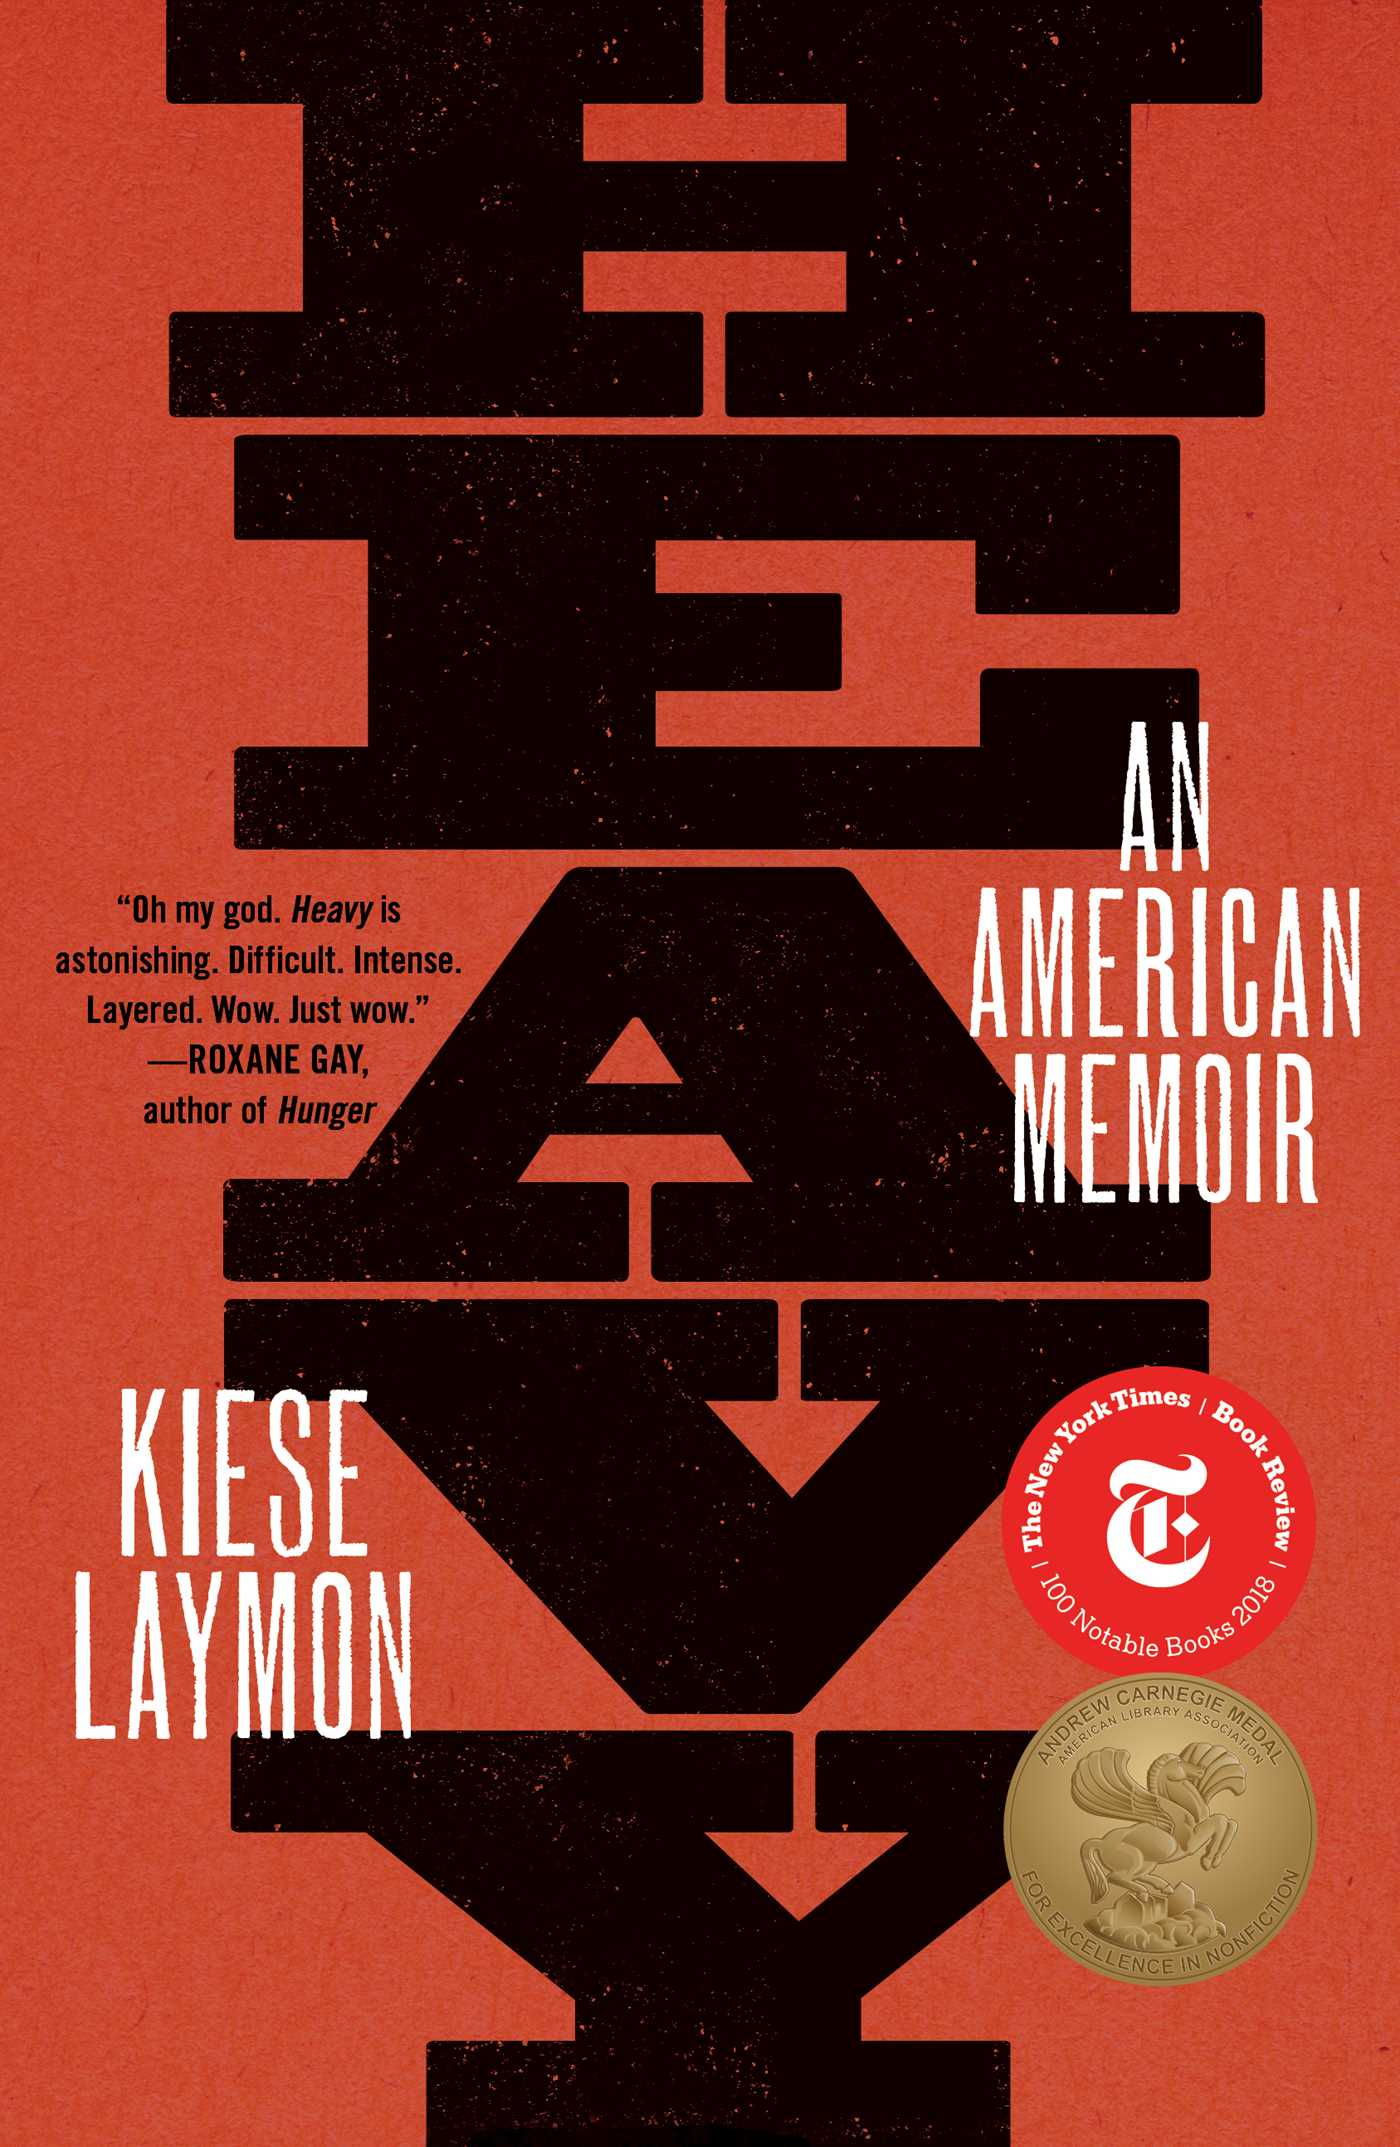 Image result for Heavy: An American Memoir by Kiese Laymon